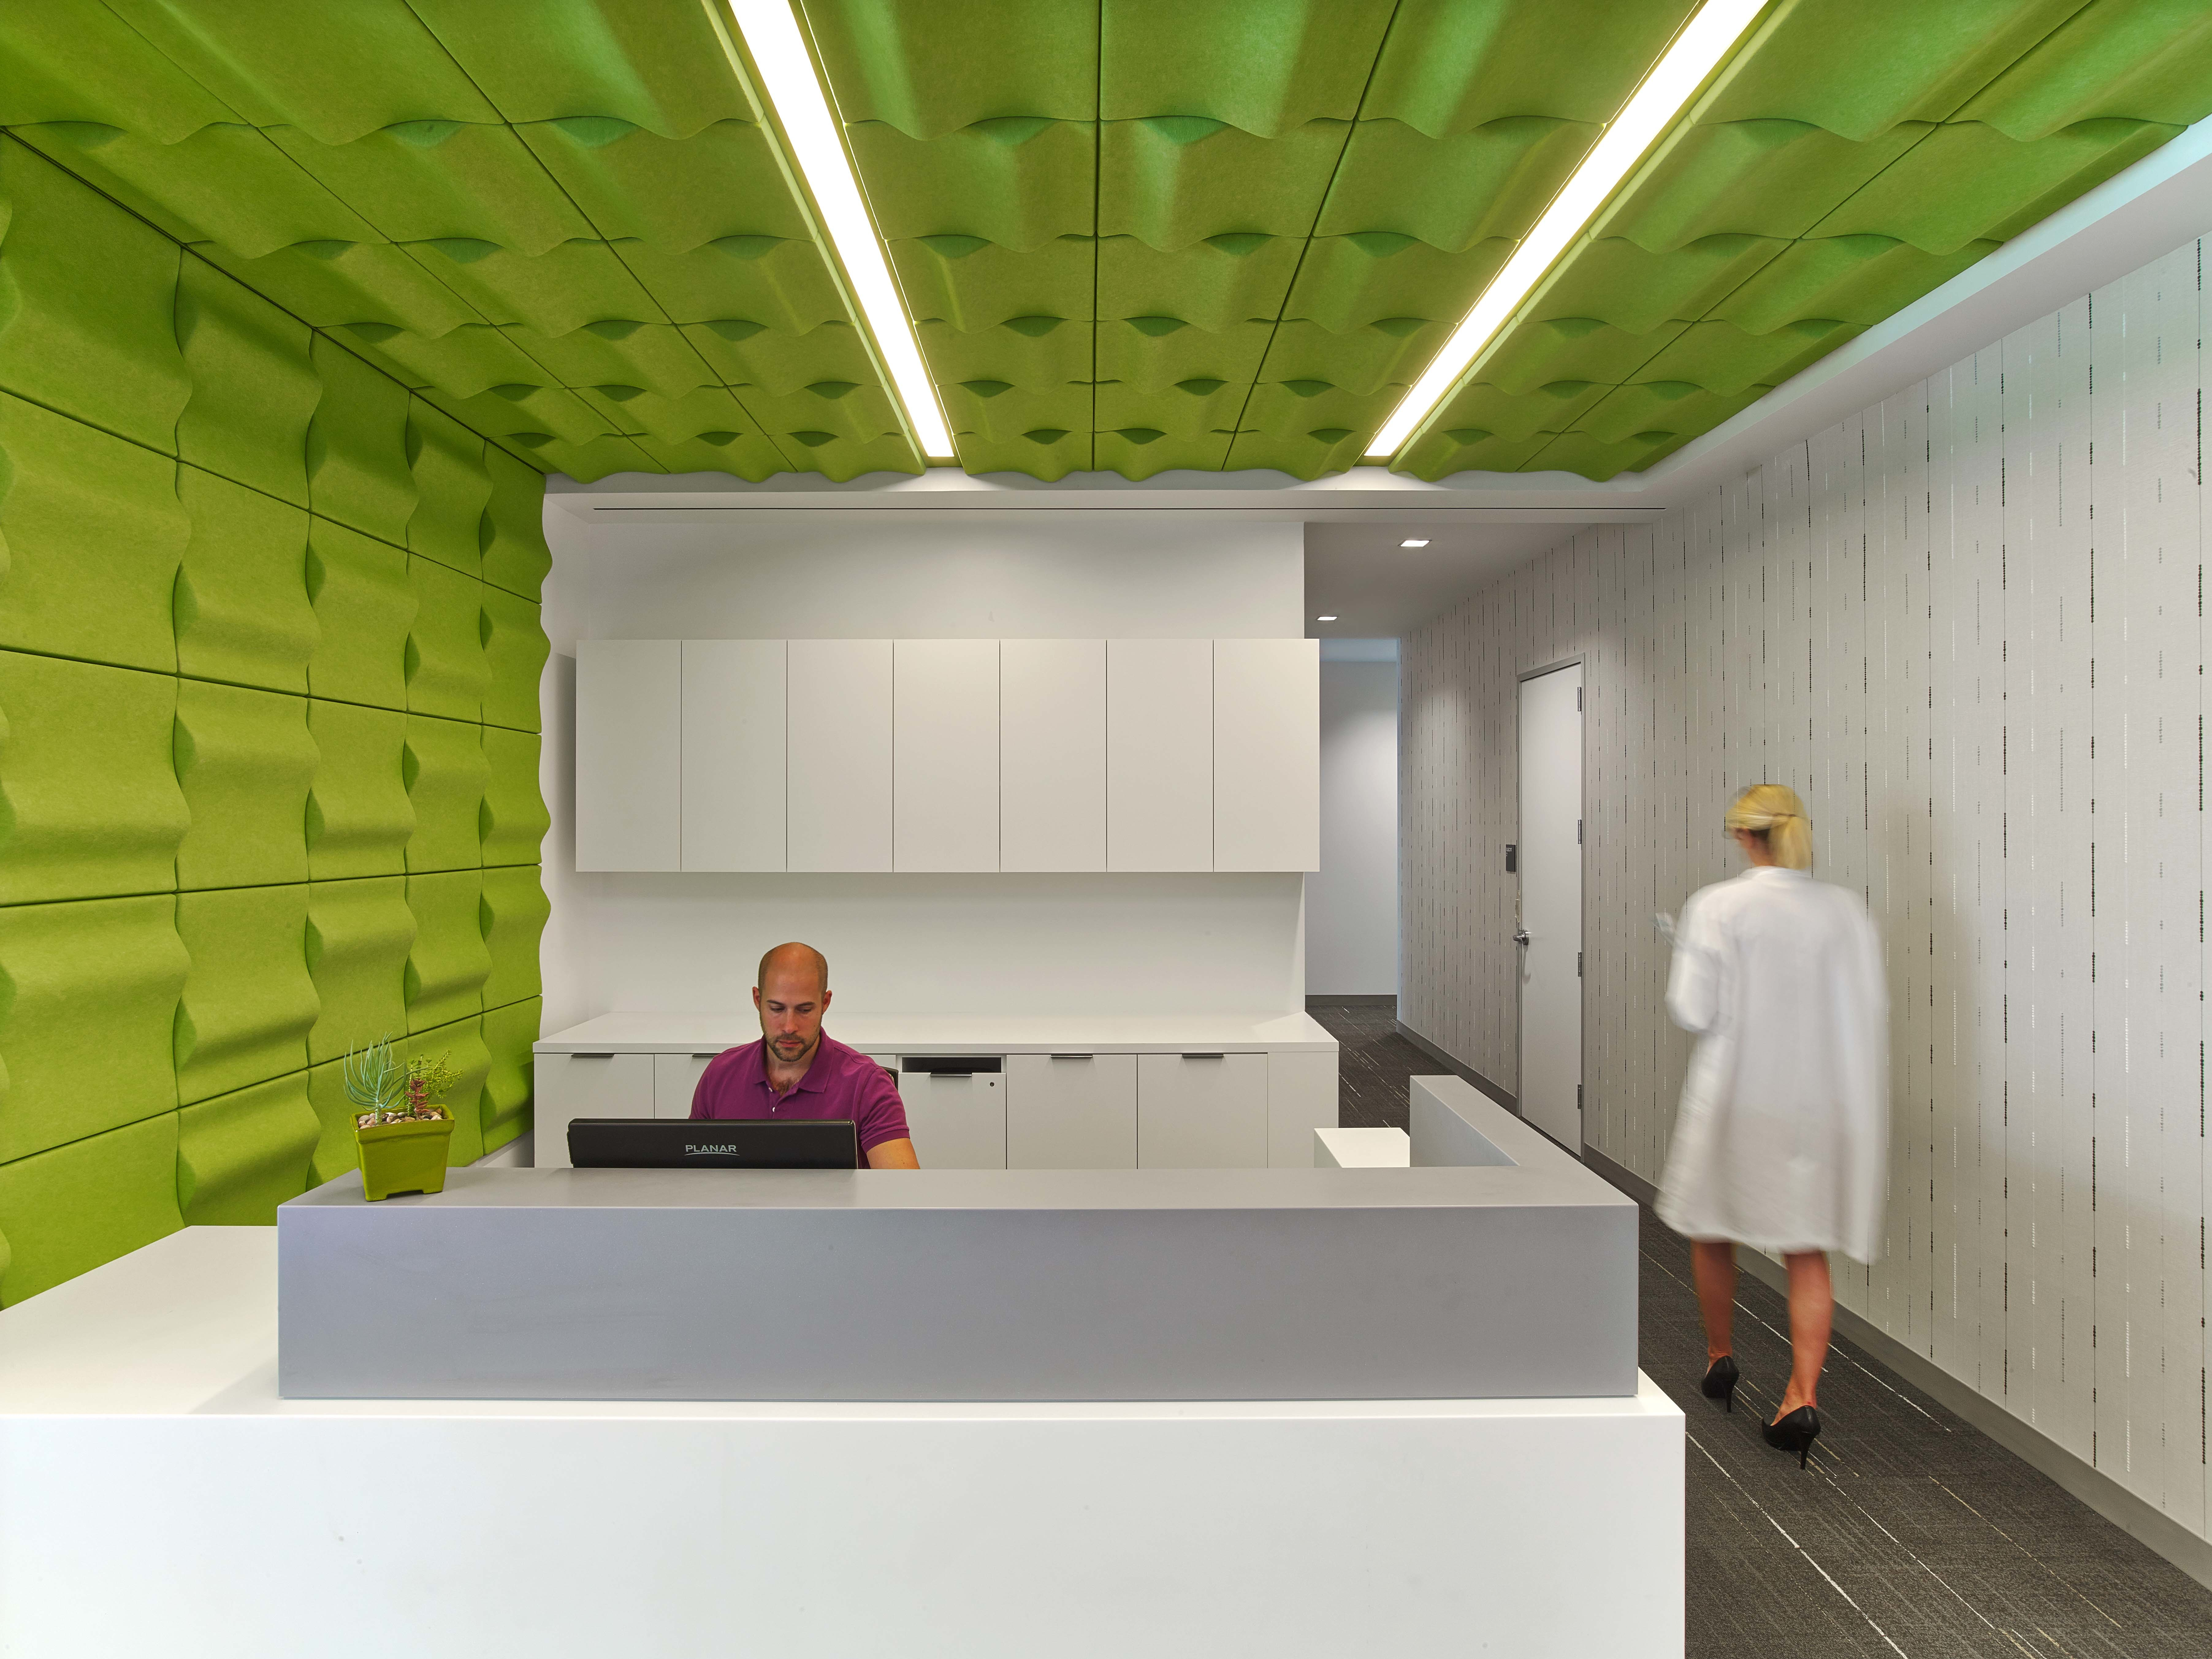 Ep-Mura-Wave-Tile-Wall-Hospital-Healthcare-Whitman-Walker-2